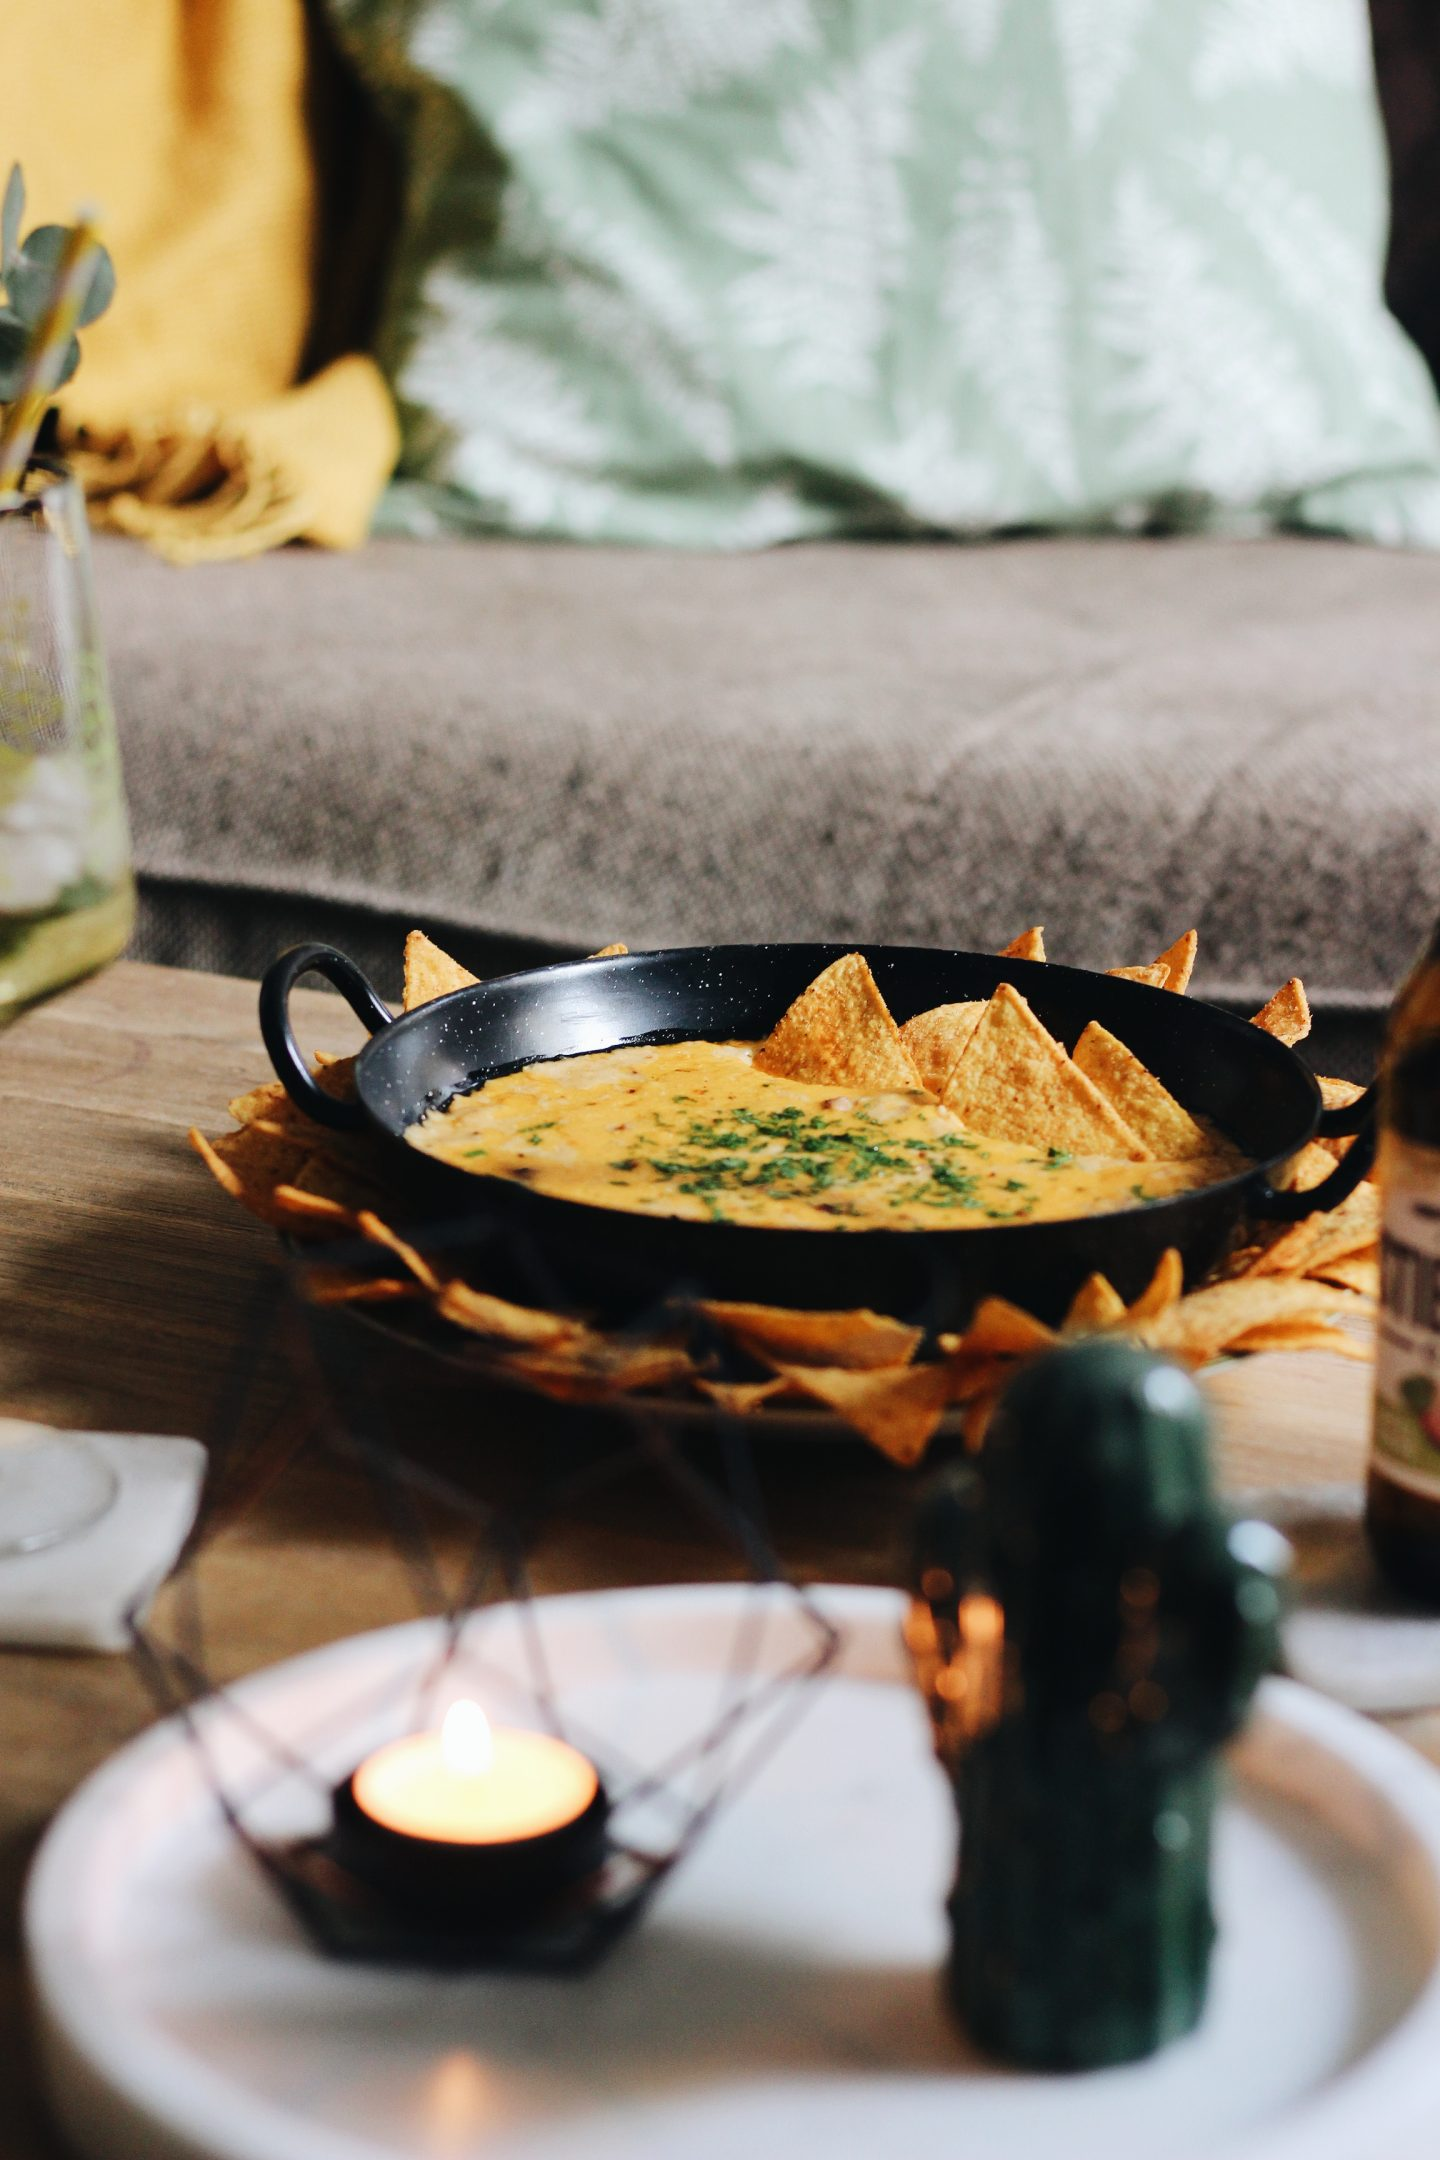 FOOD | Homemade Nacho Cheese Dip – Starlights in the Kitchen